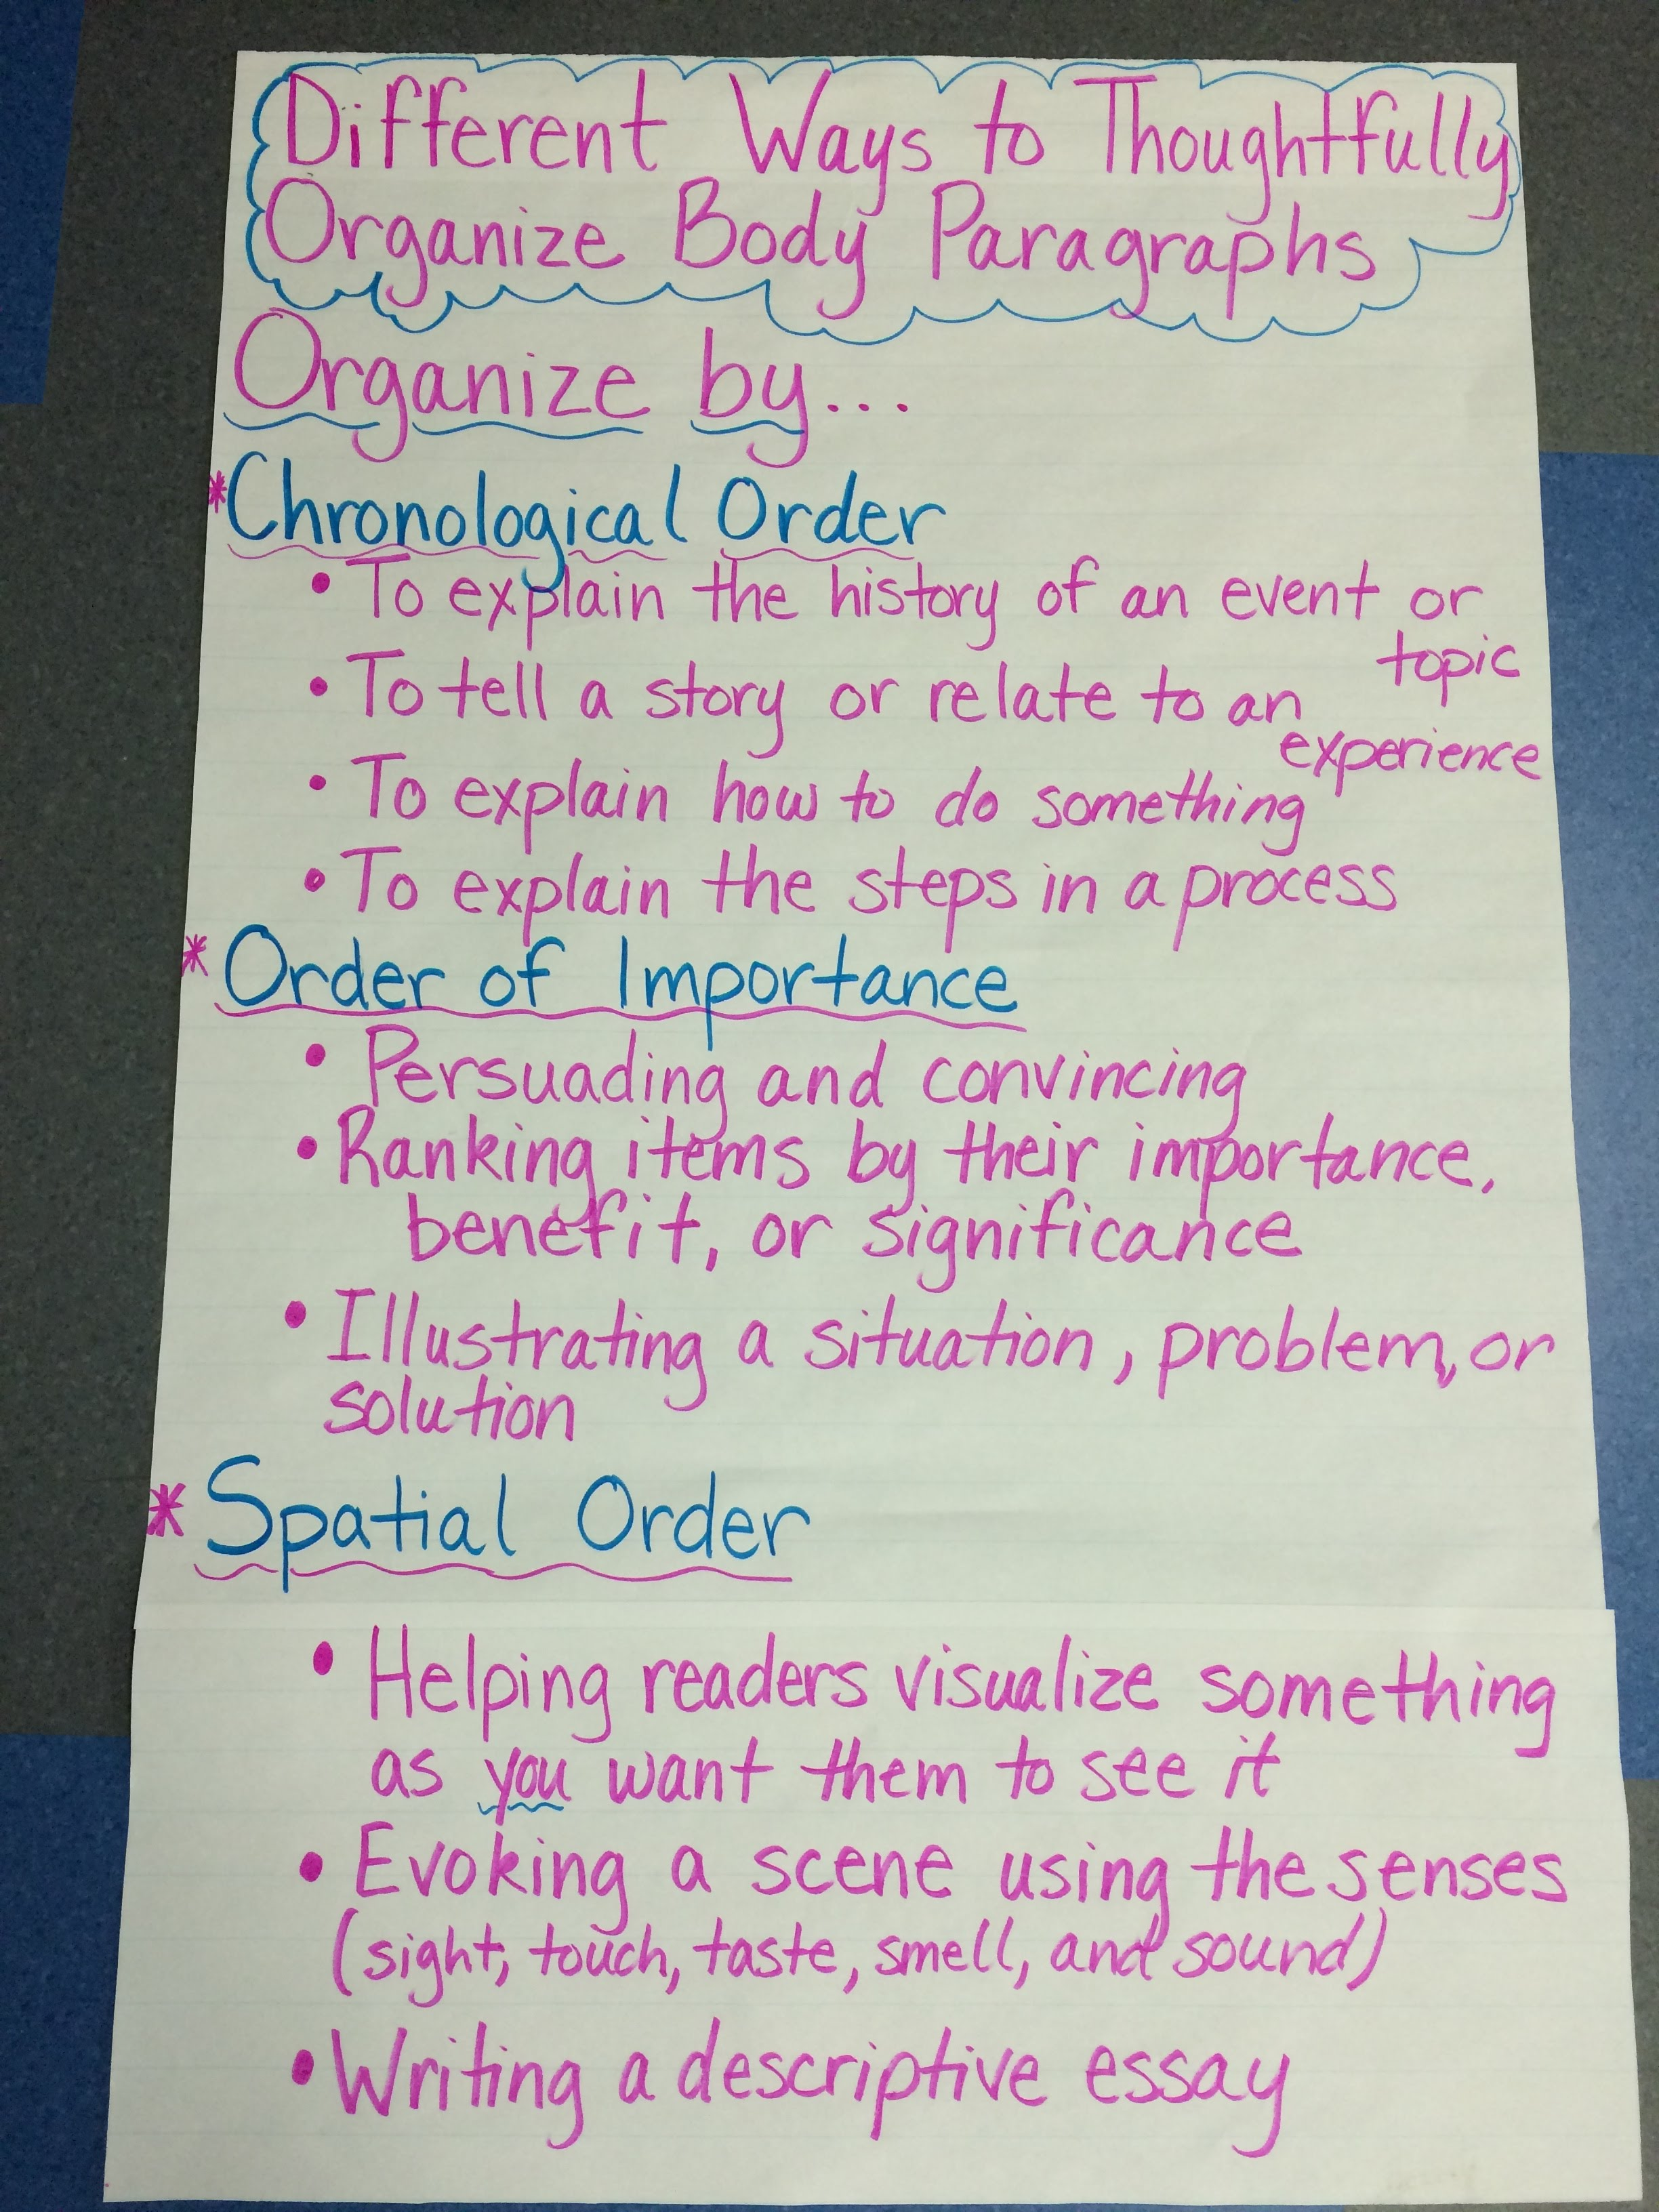 r literacy mrs brandt today we will be thinking about how to thoughtfully organize body paragraphs in the literary essay see anchor chart in writer s workshop anchor charts